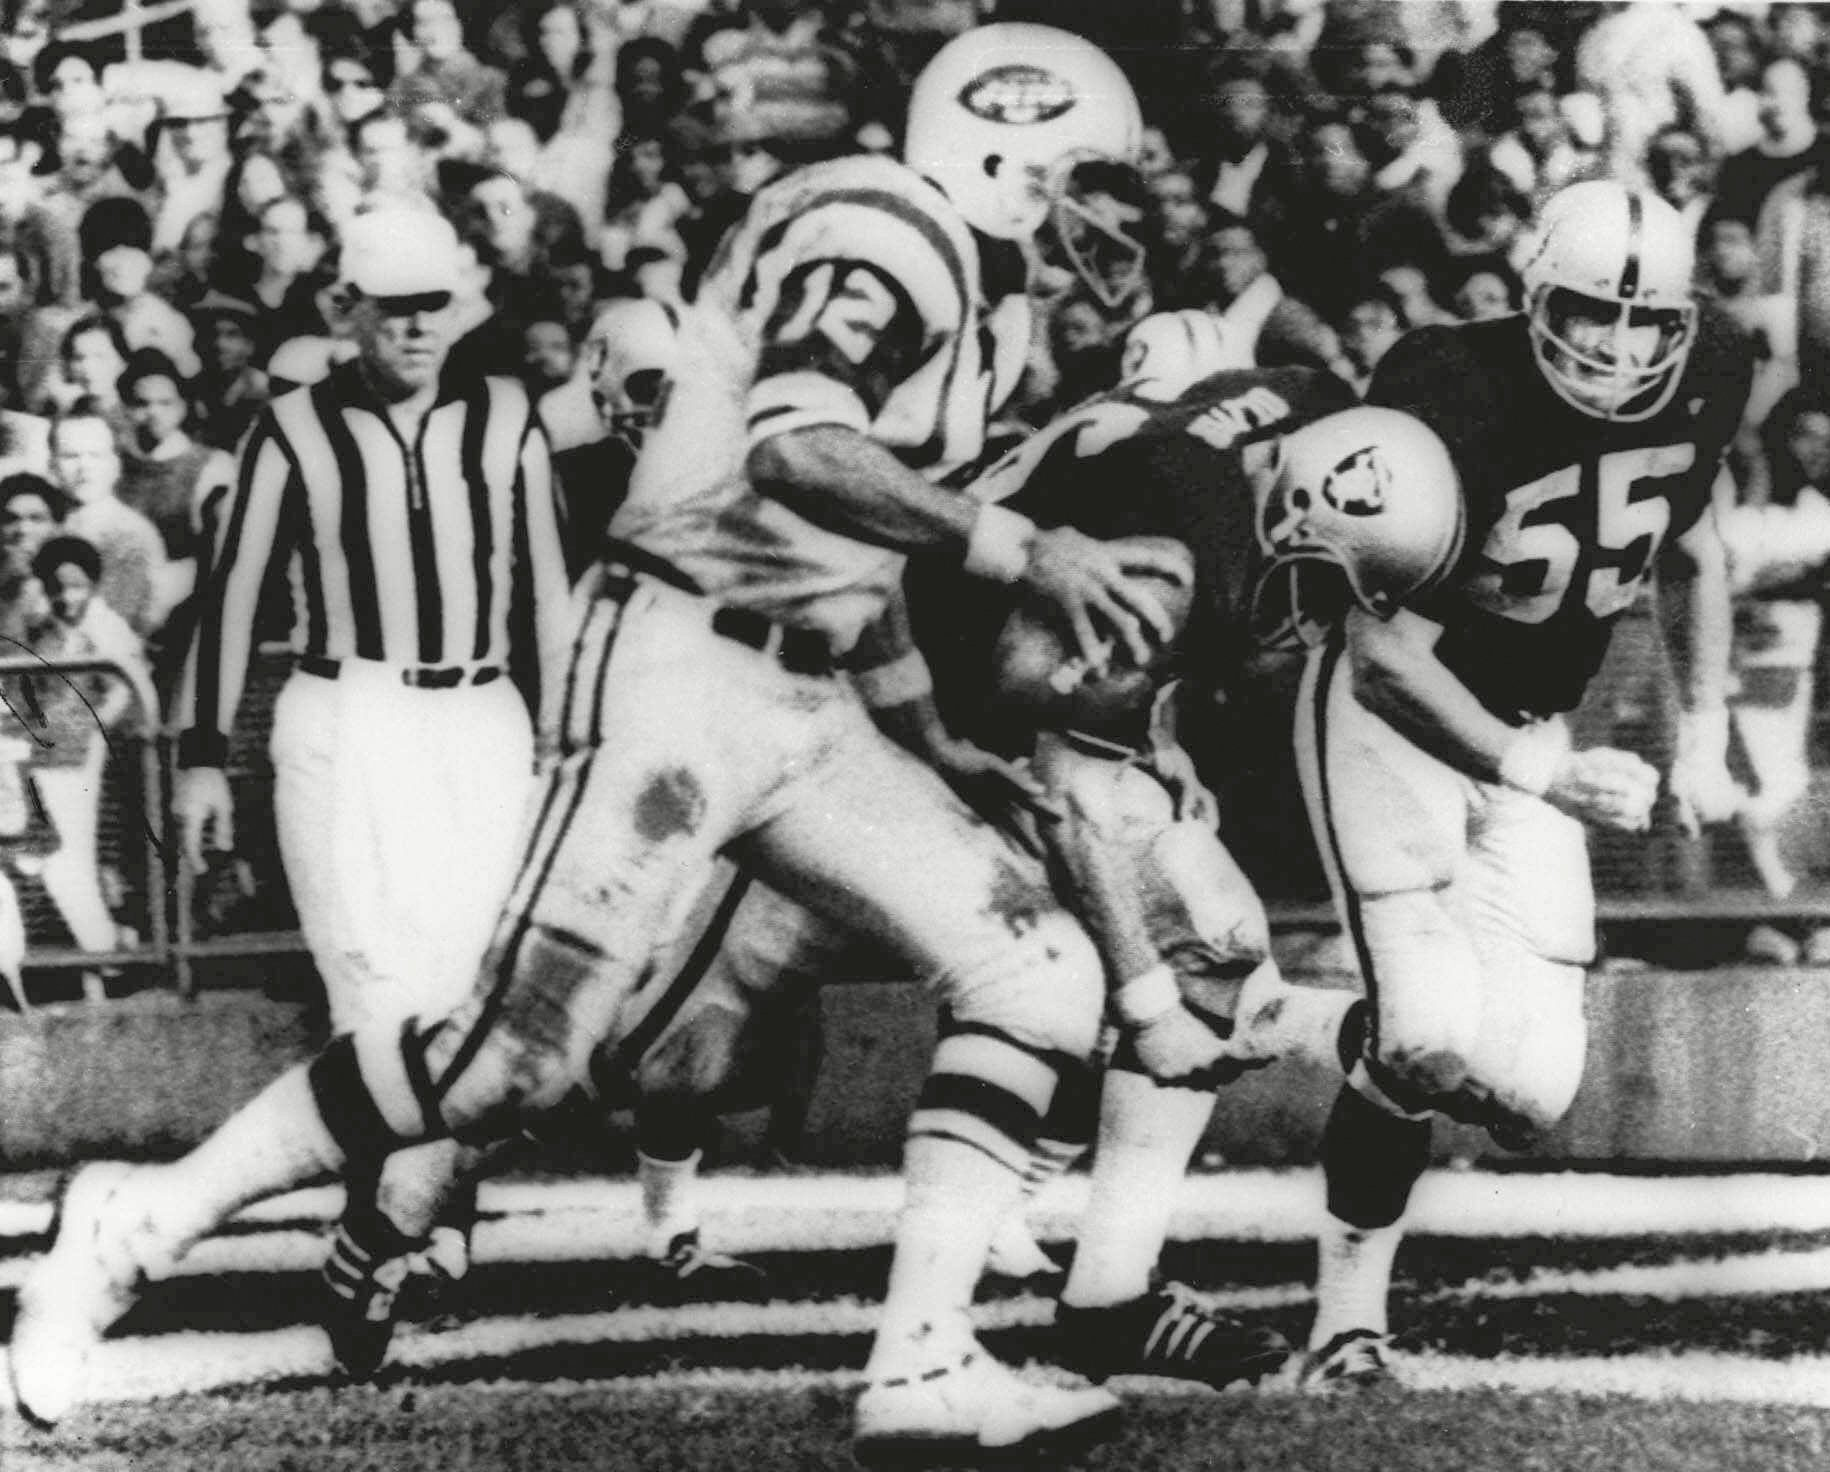 """Mandatory Credit: Photo by Uncredited/AP/Shutterstock (10479900a) HEIDI. New York Jets' quarterback Joe Namath (12) sweeps around the right side past Oakland Raider defenders Ralph Oliver (56) and Dan Conners (55) to score from the one-yard line during the second quarter of a football game at Oakland Coliseum in Oakland, Calif. The Jets were leading 32-29 when the childrens classic """"Heidi"""" began on NBC, interrupting the final minutes of the game which the Raiders won 43-32 in one of the most dramatic rallies in AFL history Game of the Week Analysis Football, OAKLAND, USA - 17 Nov 1968"""